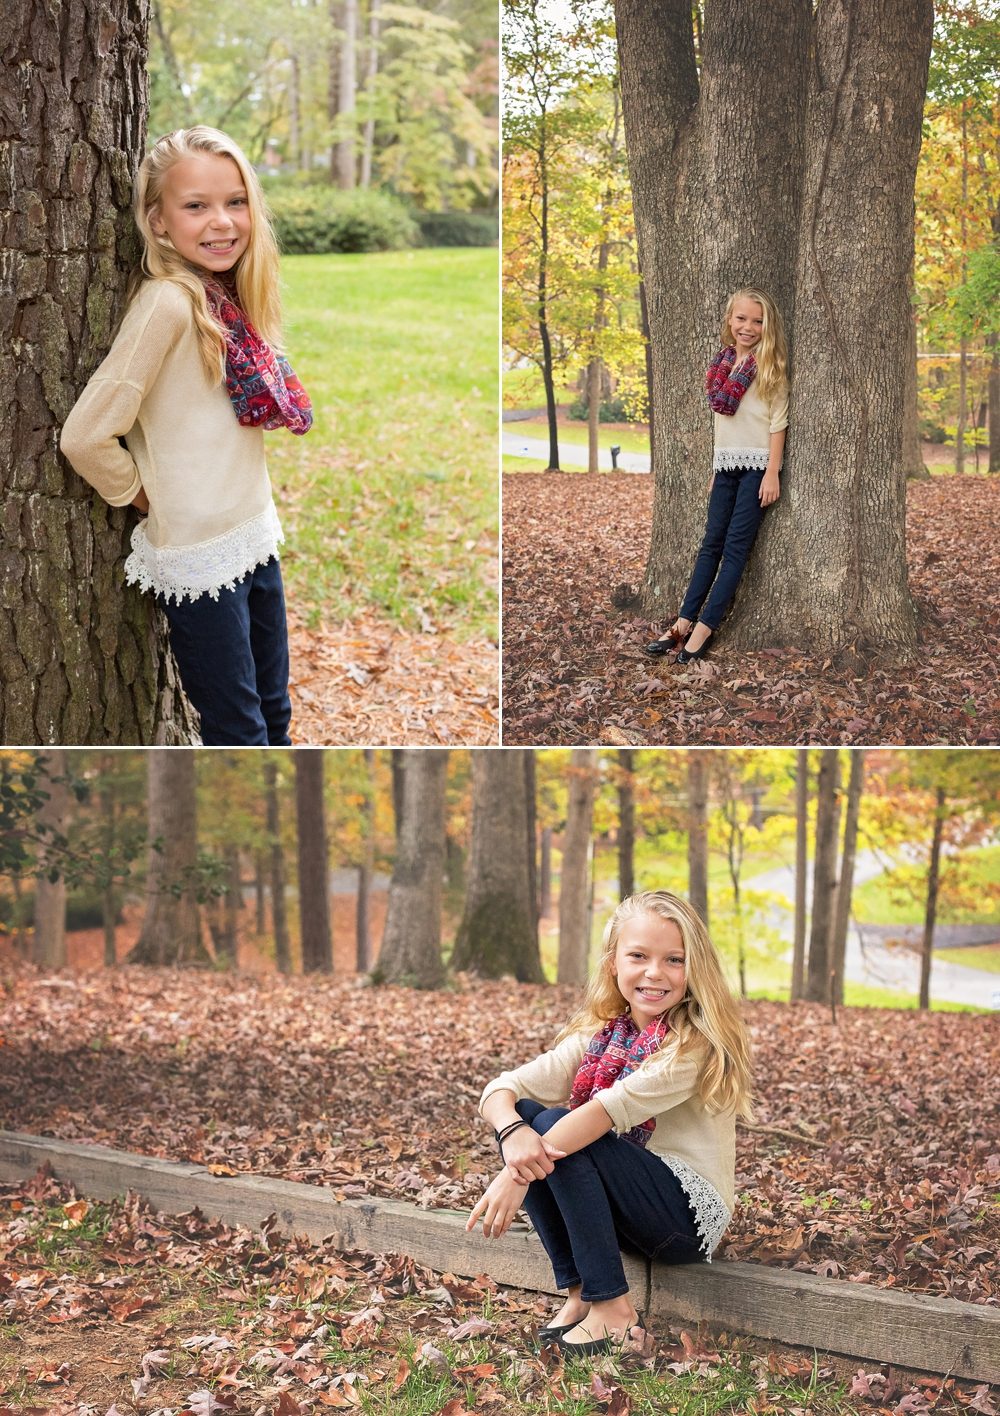 Girl stands with tree in Sandord NC for family photography session.